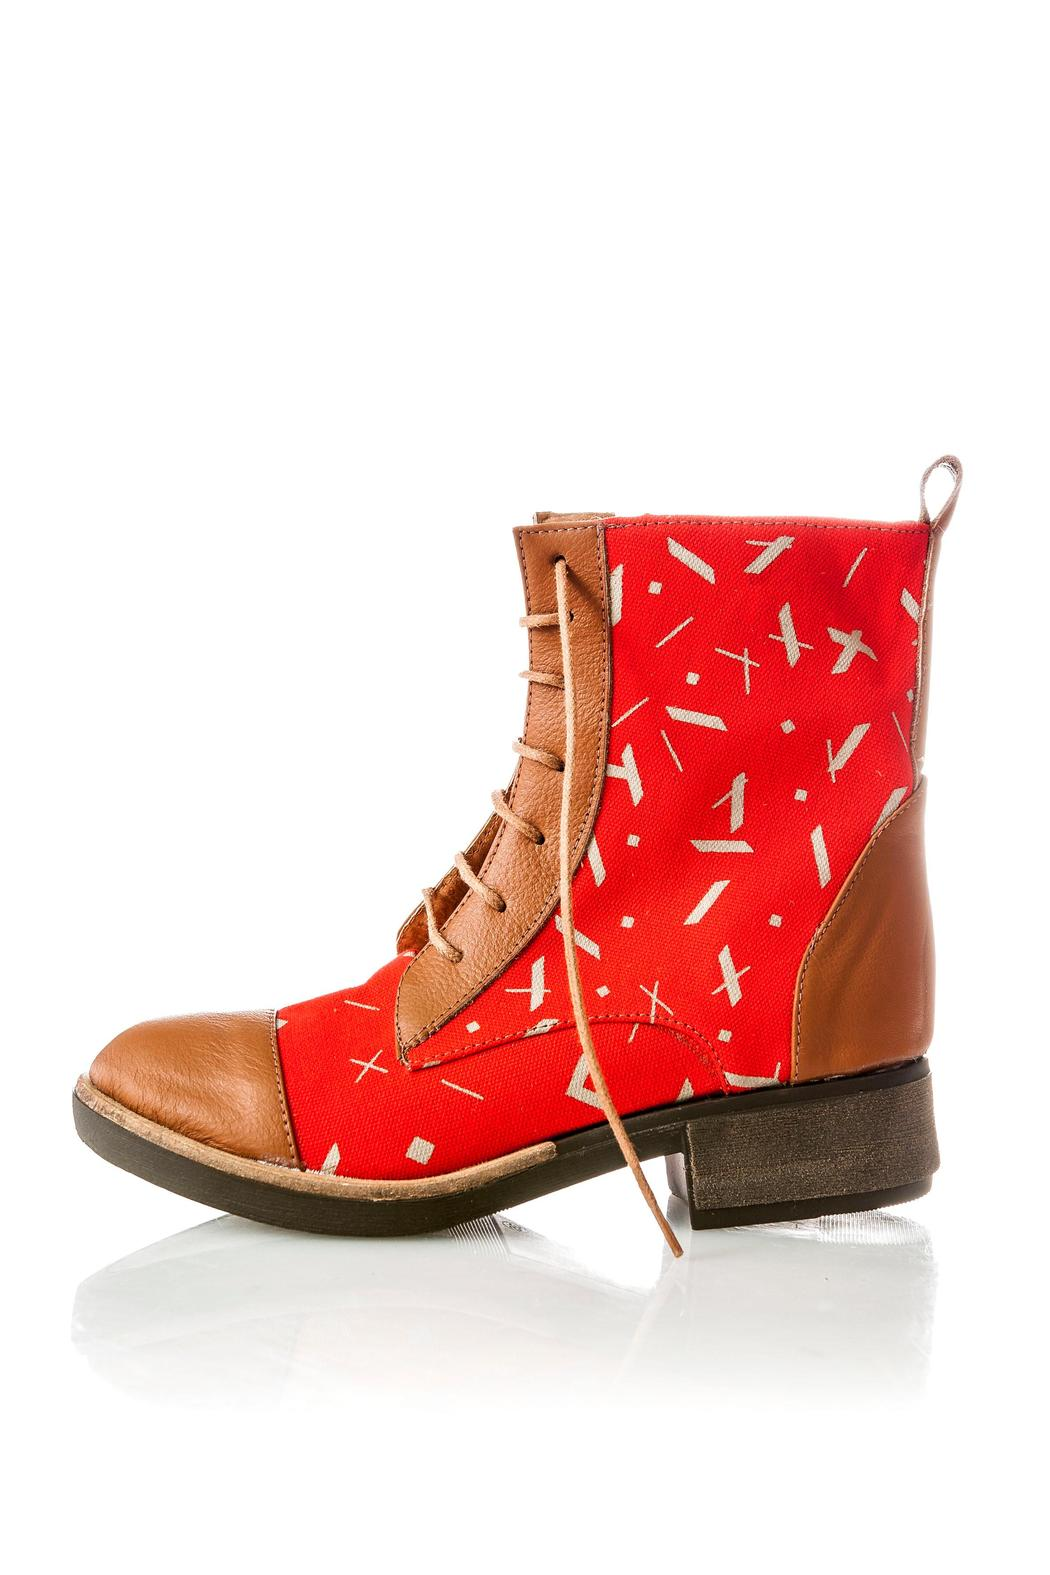 Valeria Nicali Guaraní Laceup Boot - Front Full Image